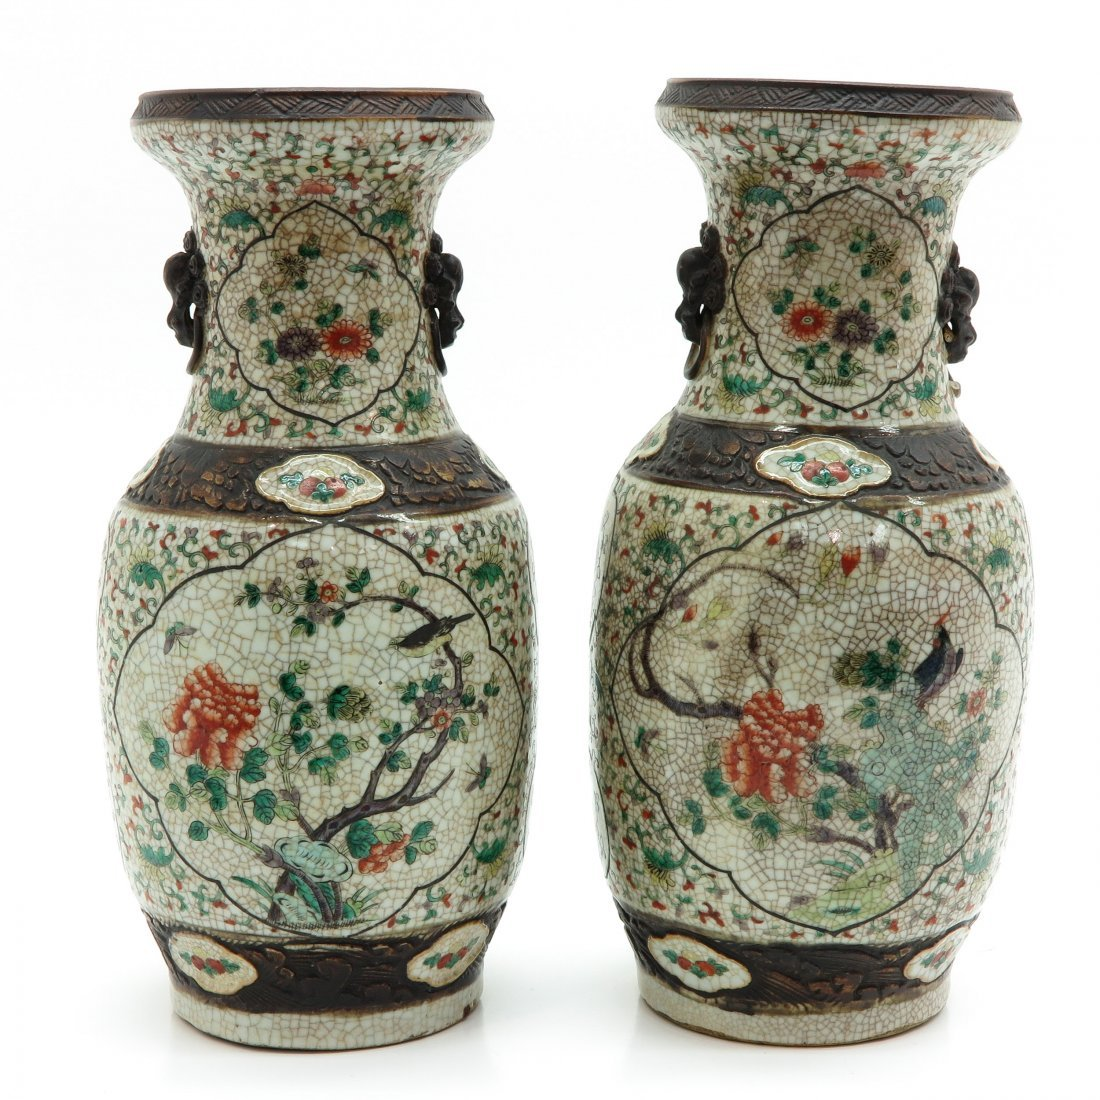 Lot of 2 China Porcelain Nanking Vases